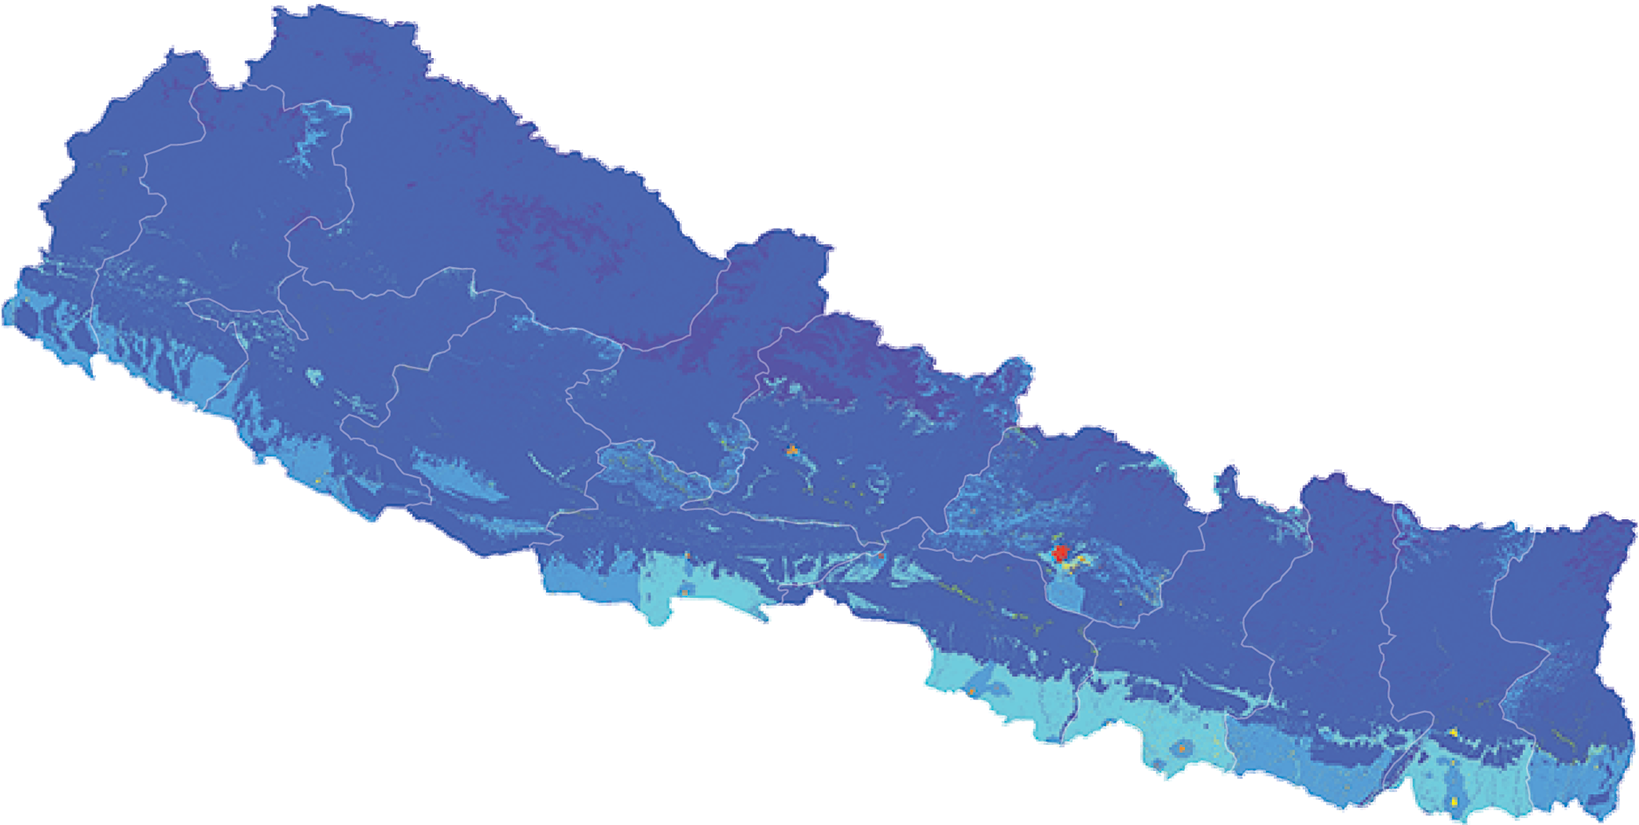 Nepal - Number and distribution of pregnancies (2012)